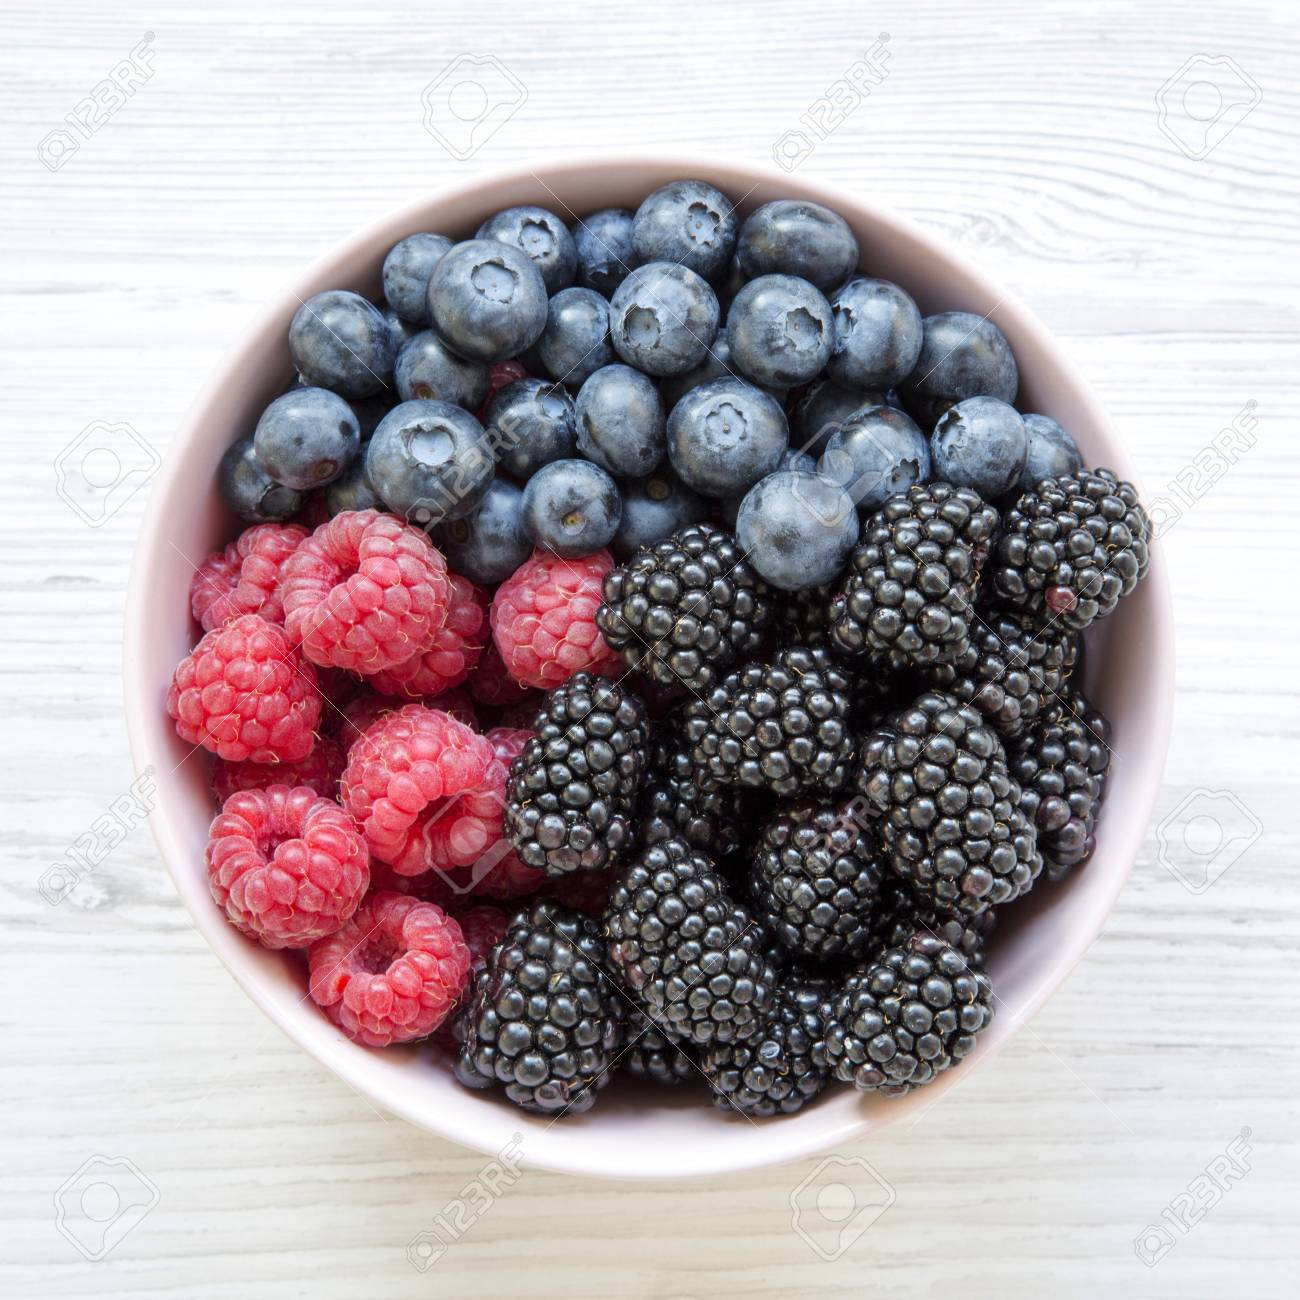 Pink Bowl Of Fresh Berries: Blackberry, Raspberry, Blueberry,.. Stock Photo, Picture And Royalty Free Image. Image 109287731.